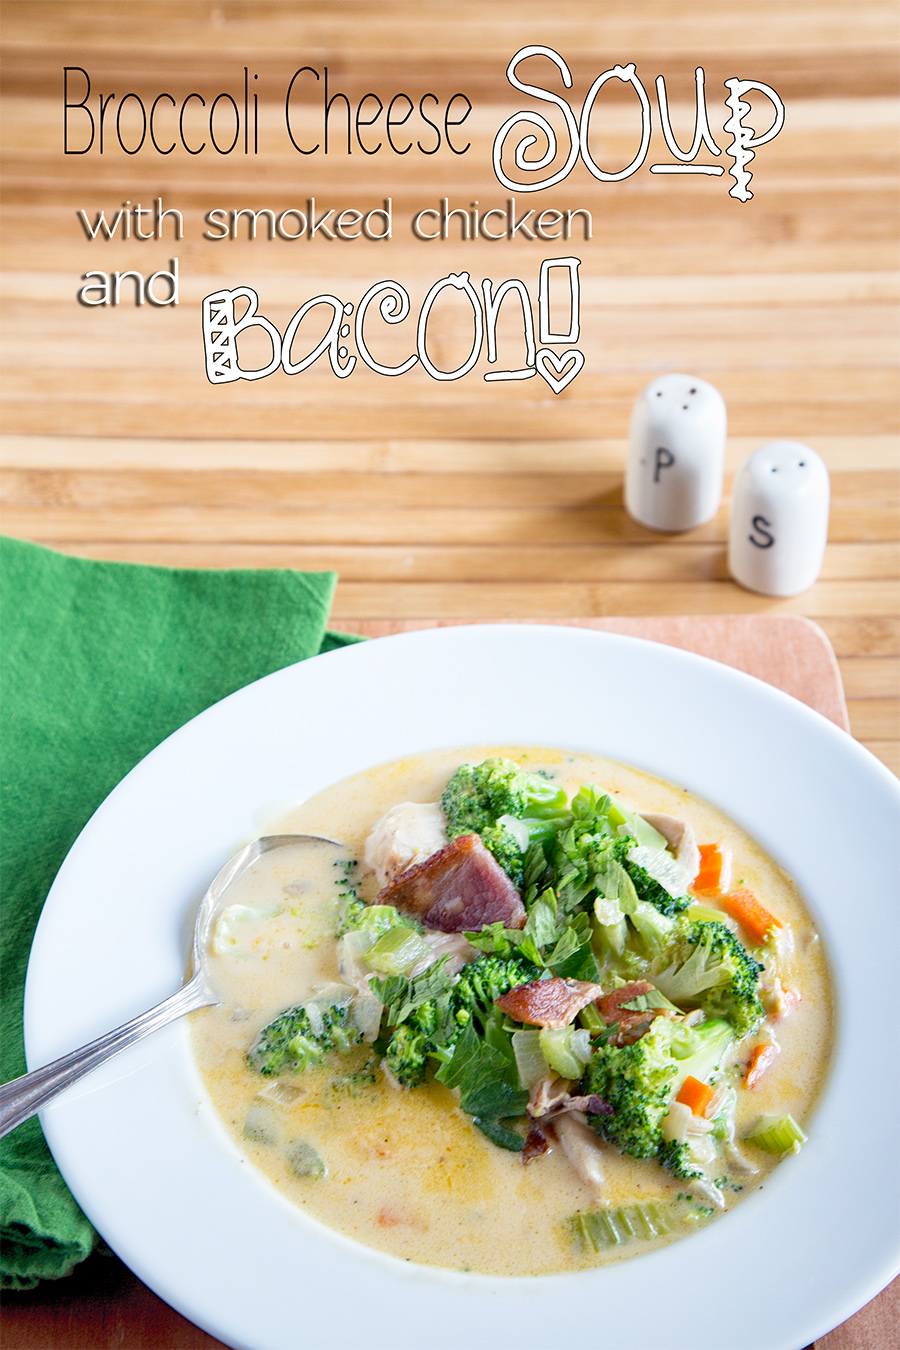 Broccoli Cheese Soup with Smoked Chicken and Bacon